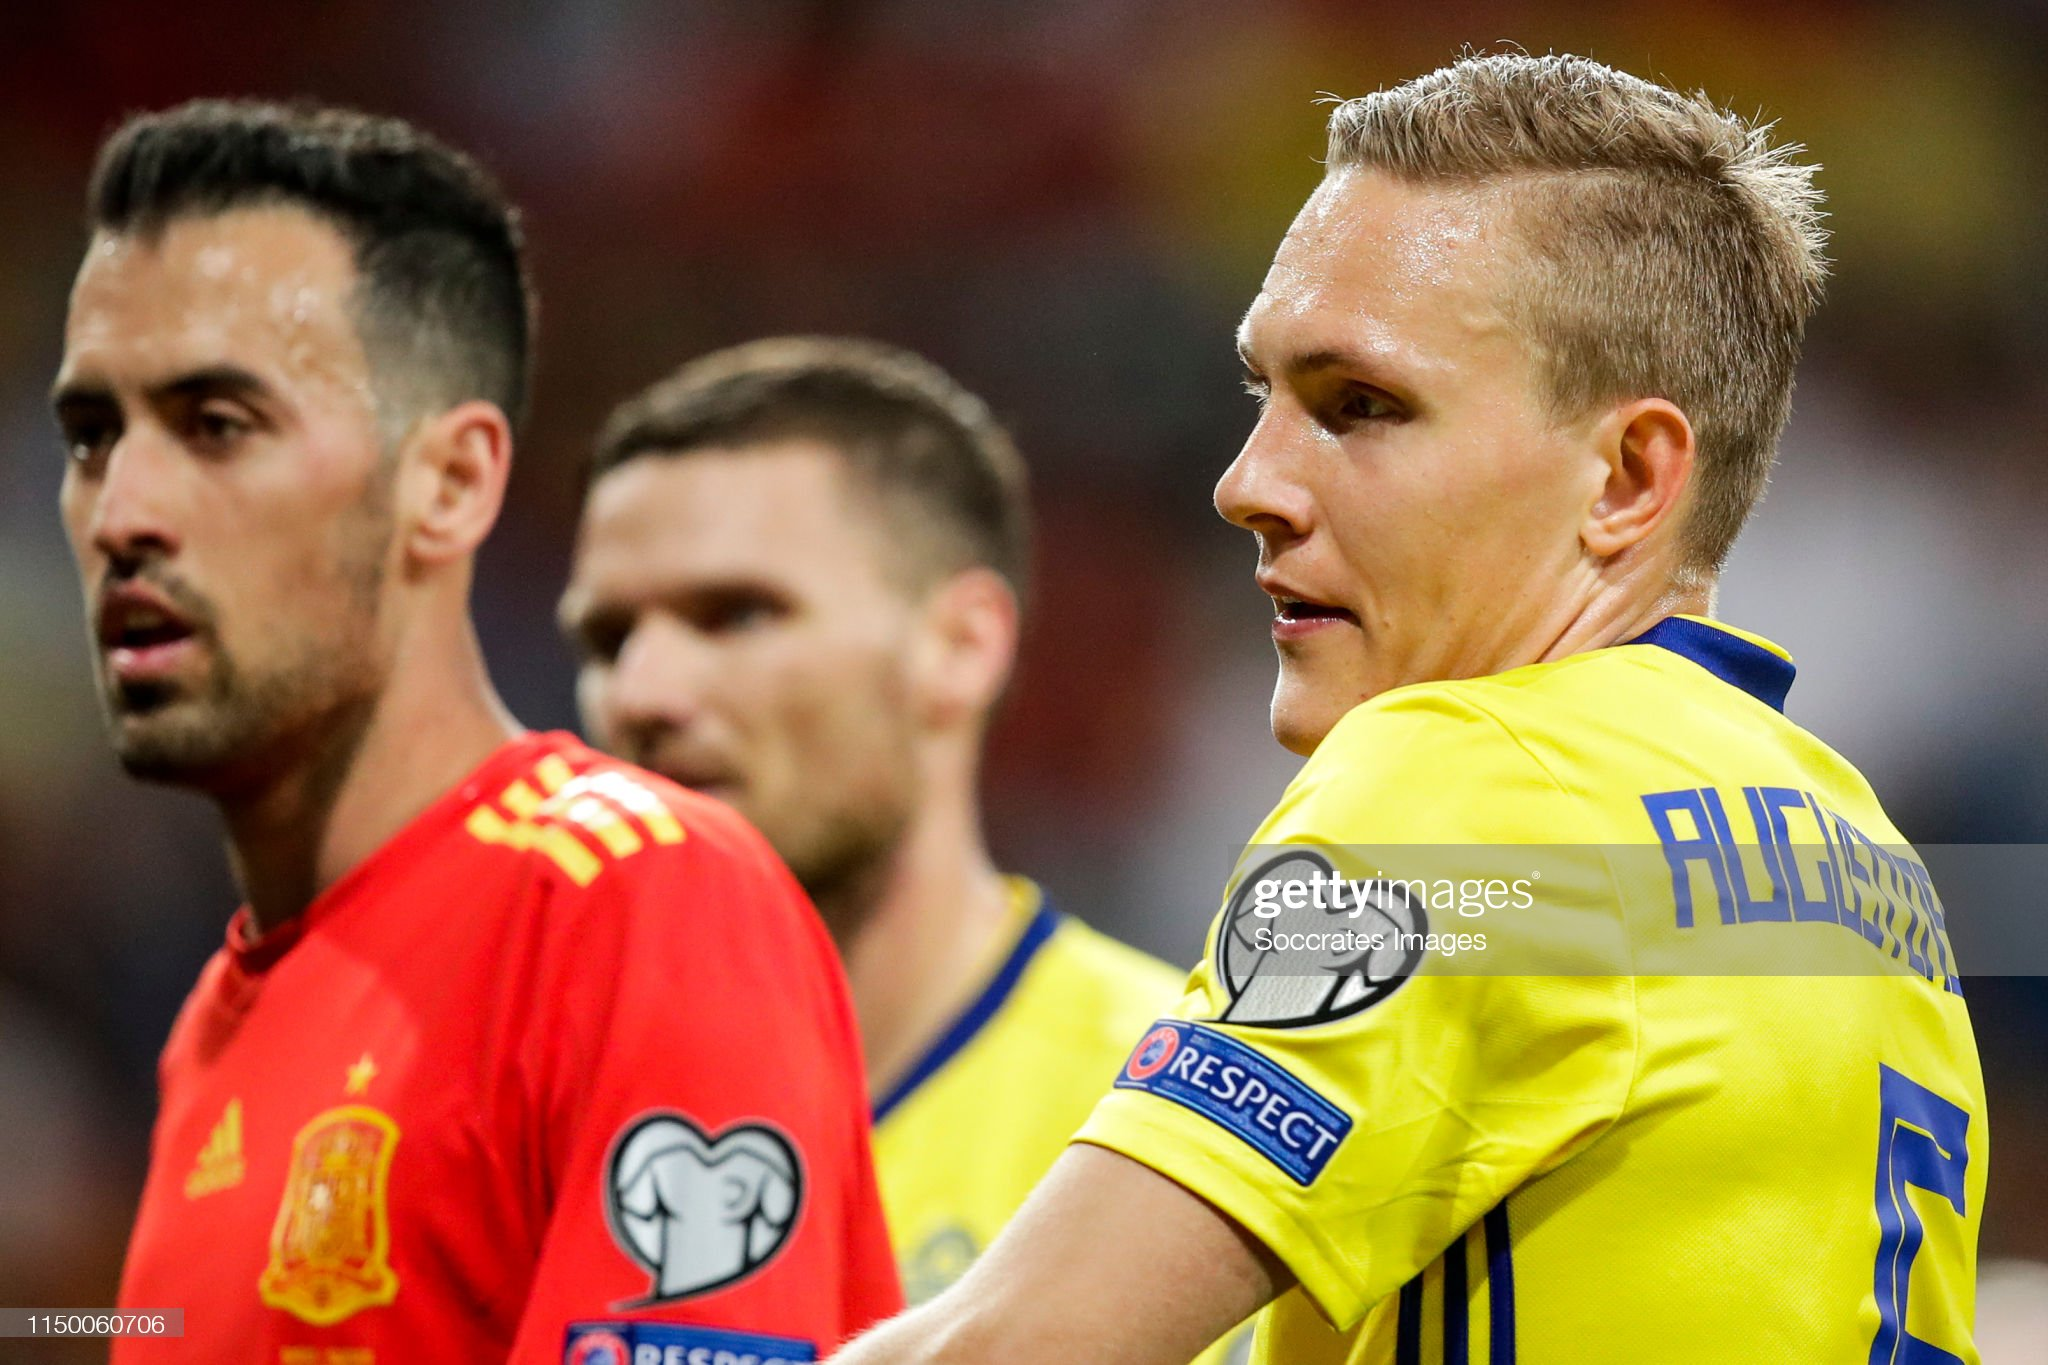 Sweden v Spain preview, prediction and odds